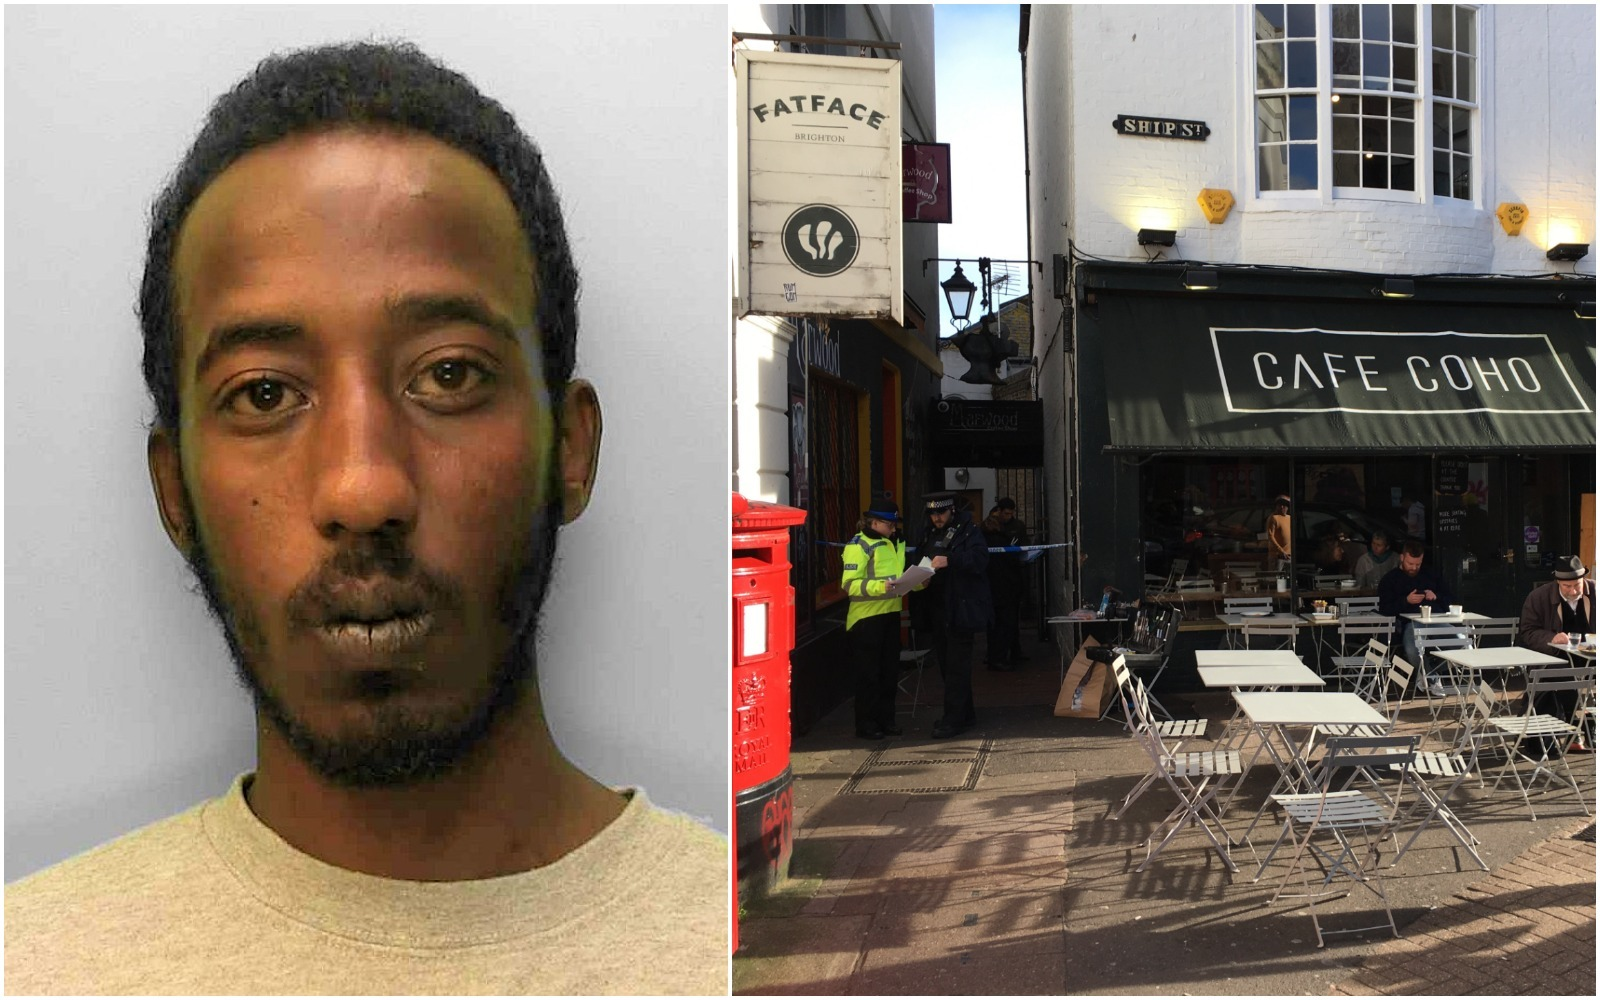 Police have appealed to track down Mahad Hussein in connection with a rape in Ship Street, Brighton, on Tuesday 15th January 2019